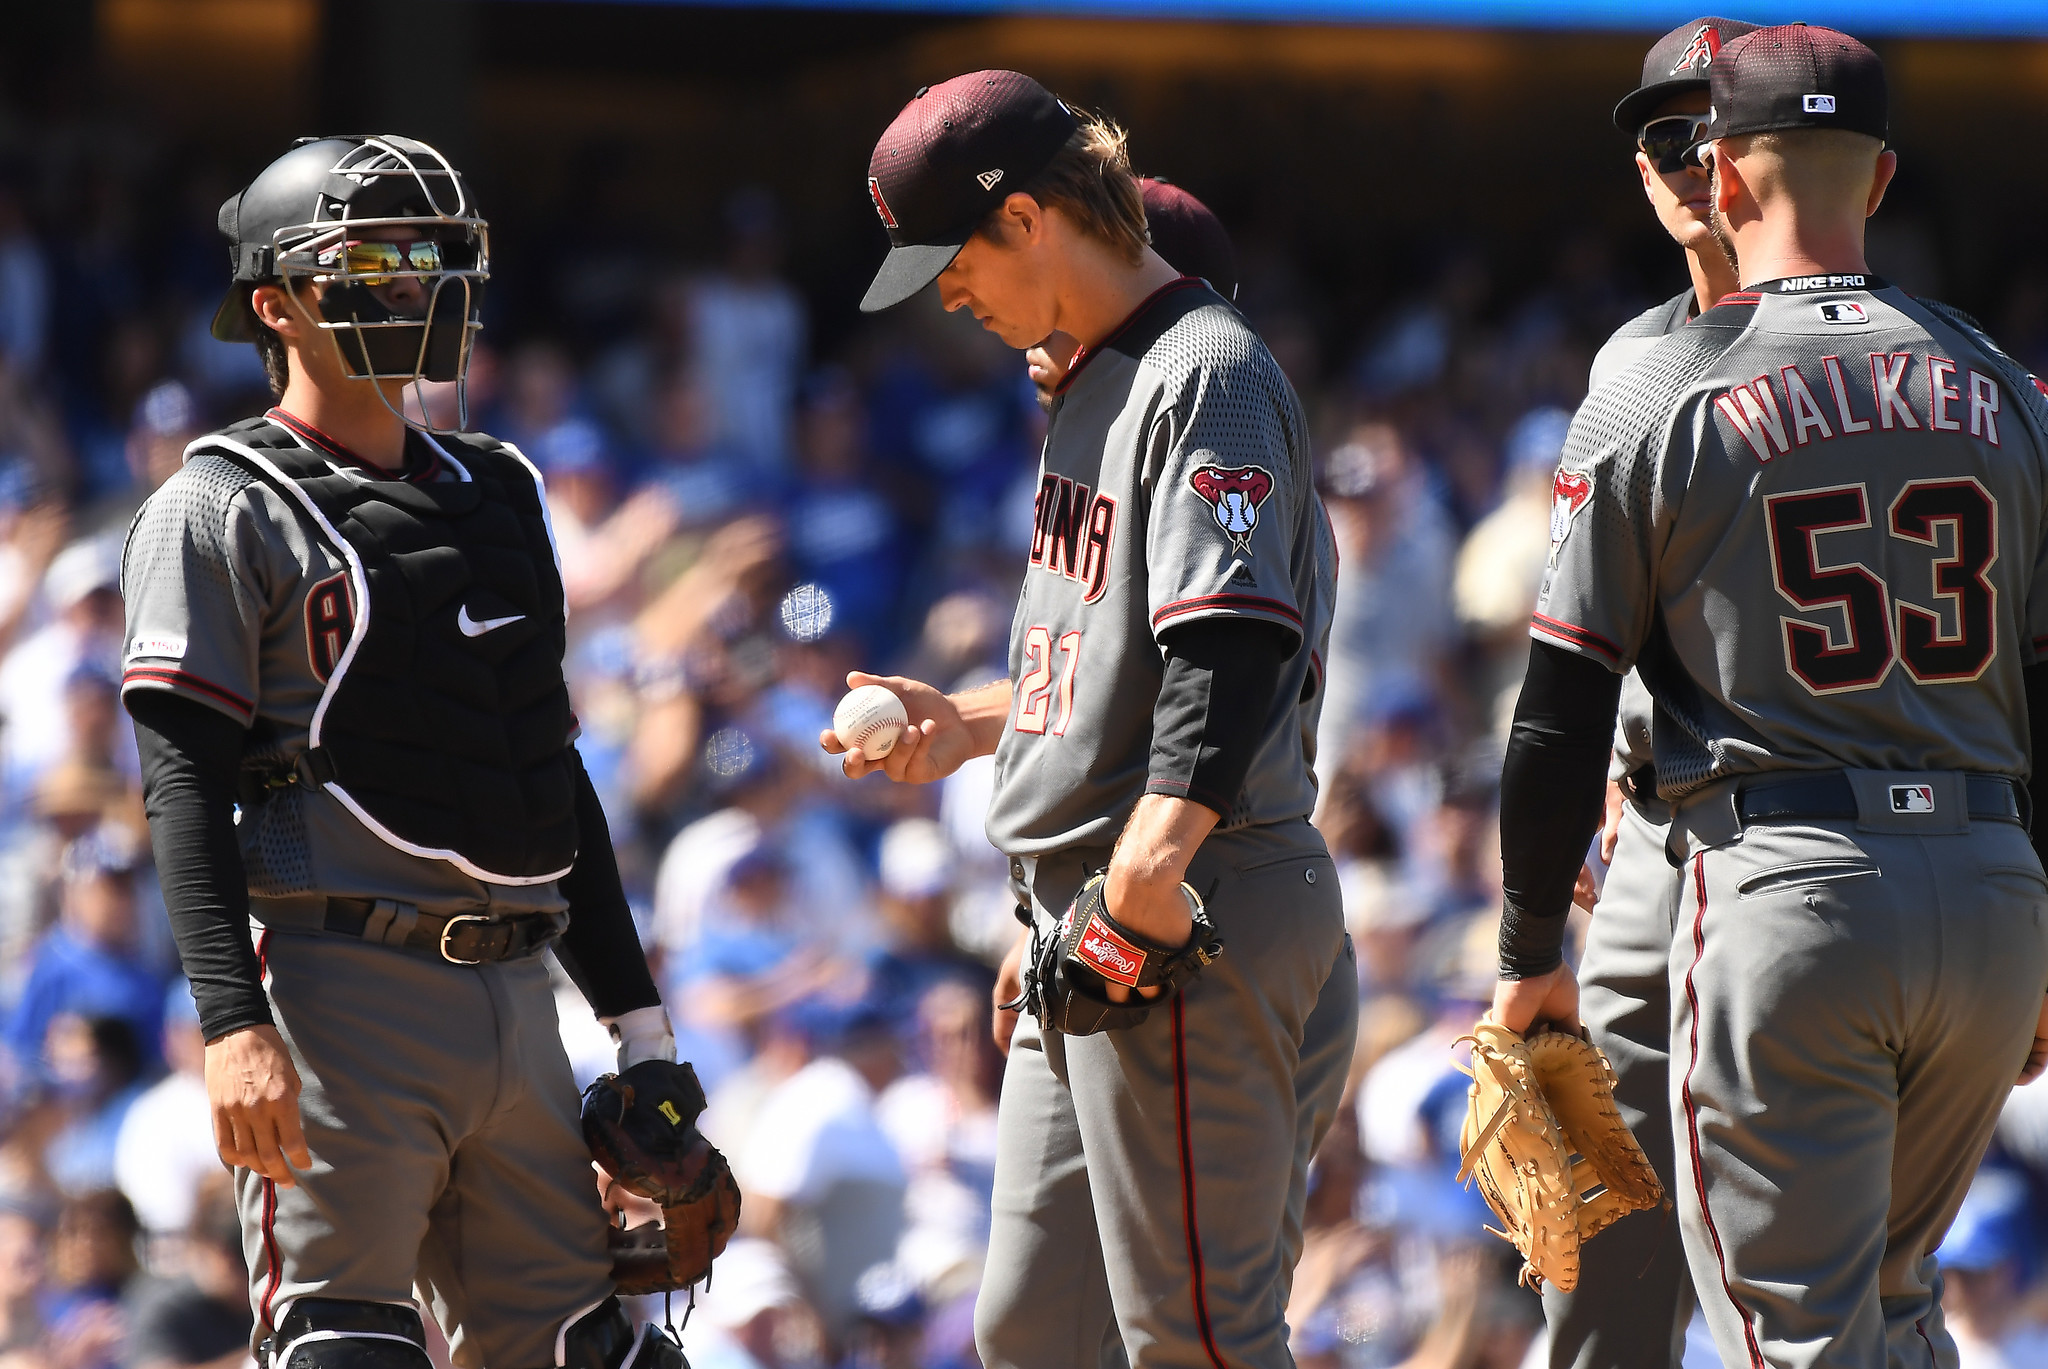 LOS ANGELES, CALIFORNIA MARCH 25, 2019-Diamondbacks pitcher looks at the ball after giving up a home